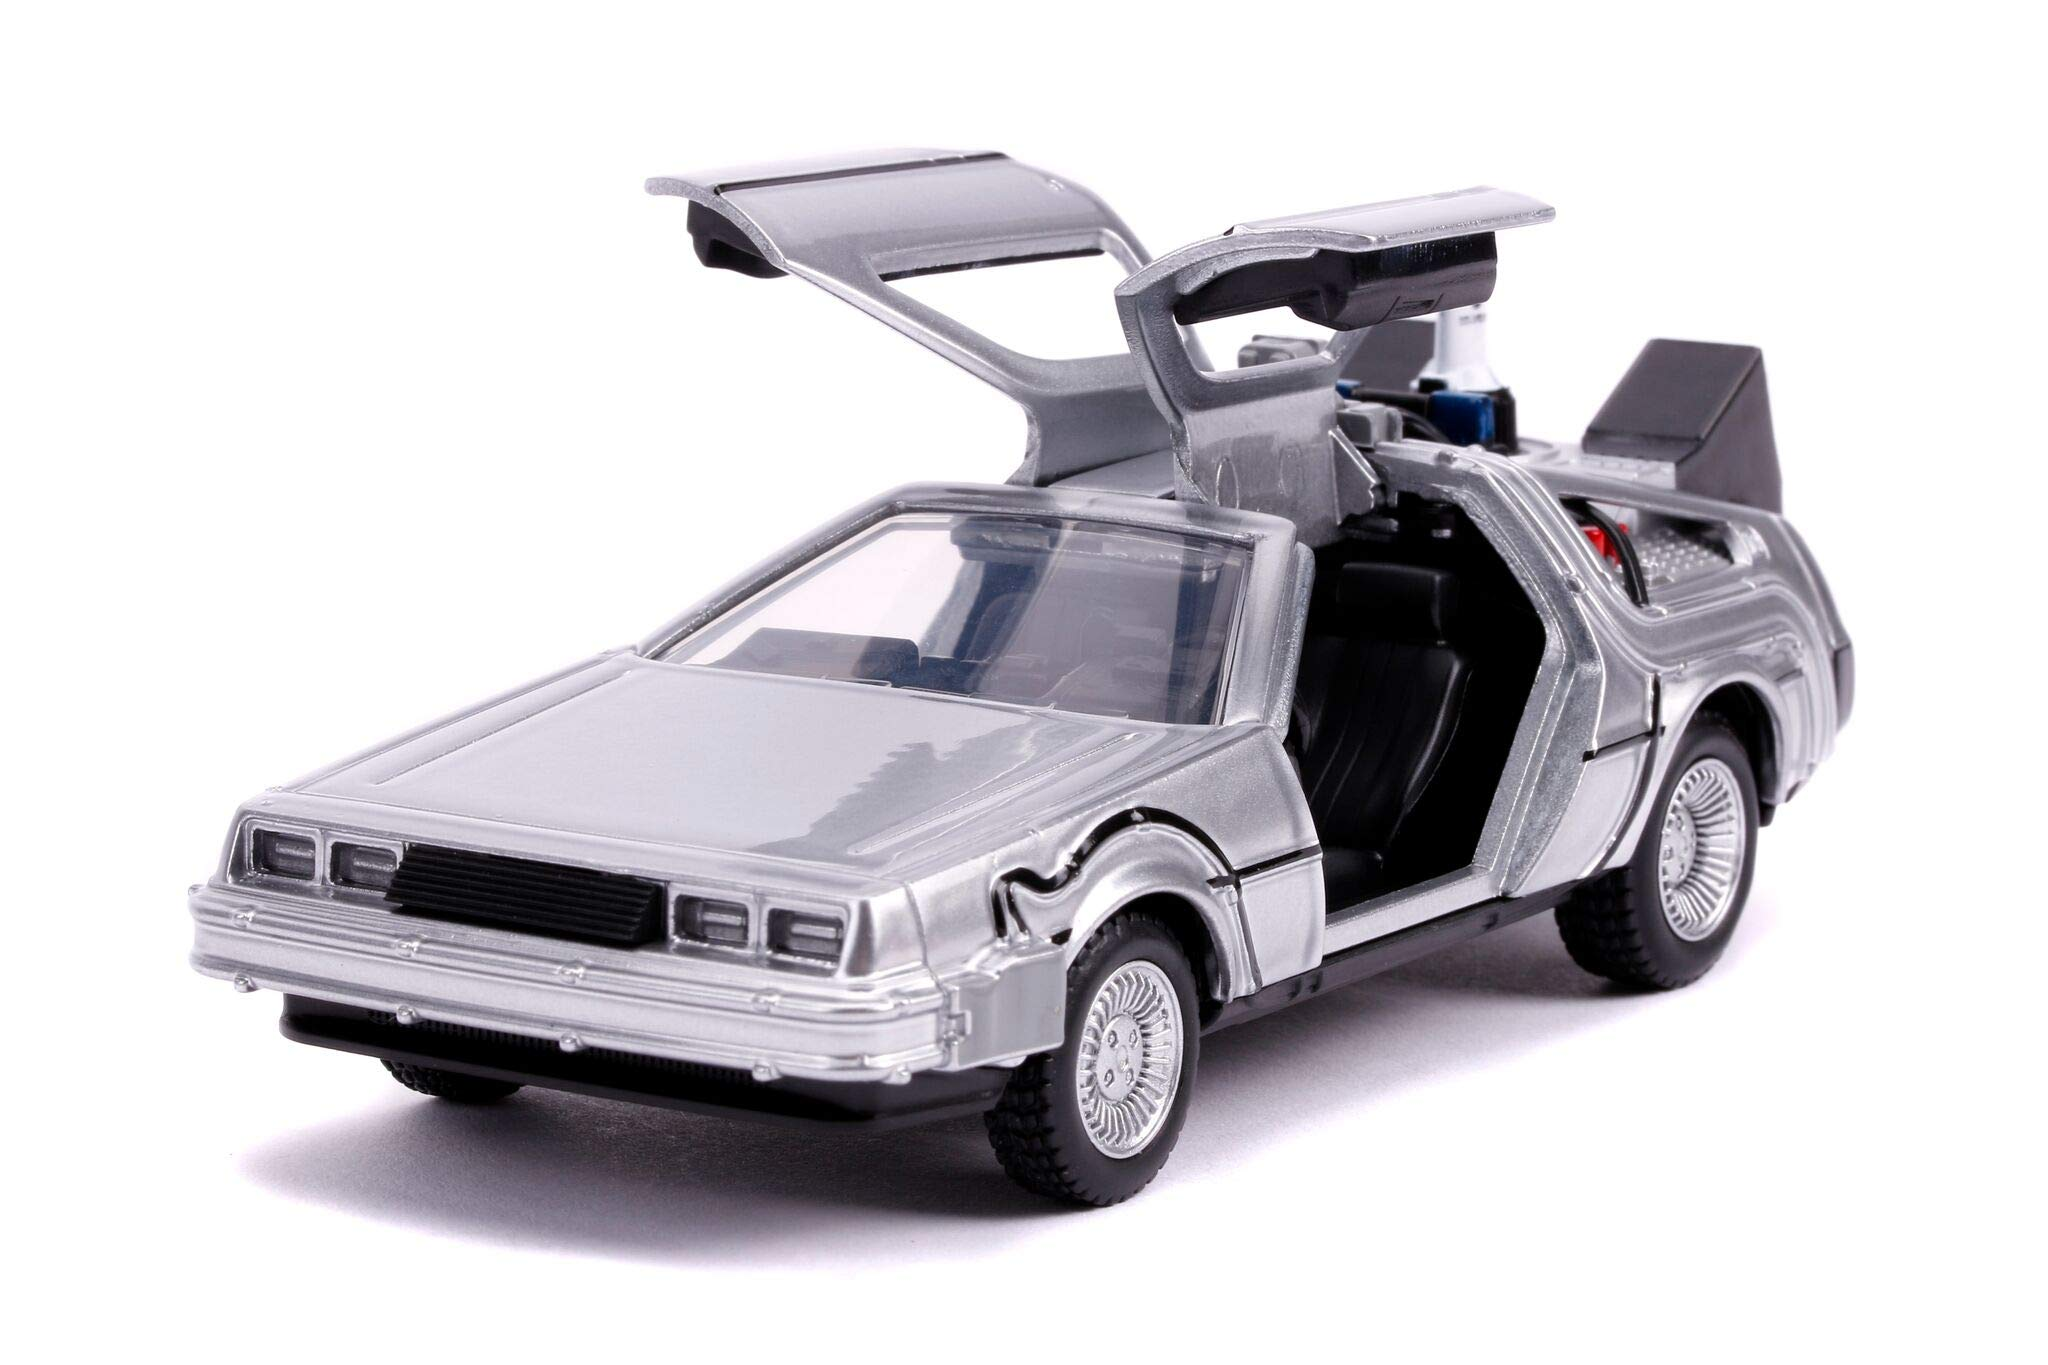 Back to the DeLorean Brushed Metal Time Machine with Lights Flying Version